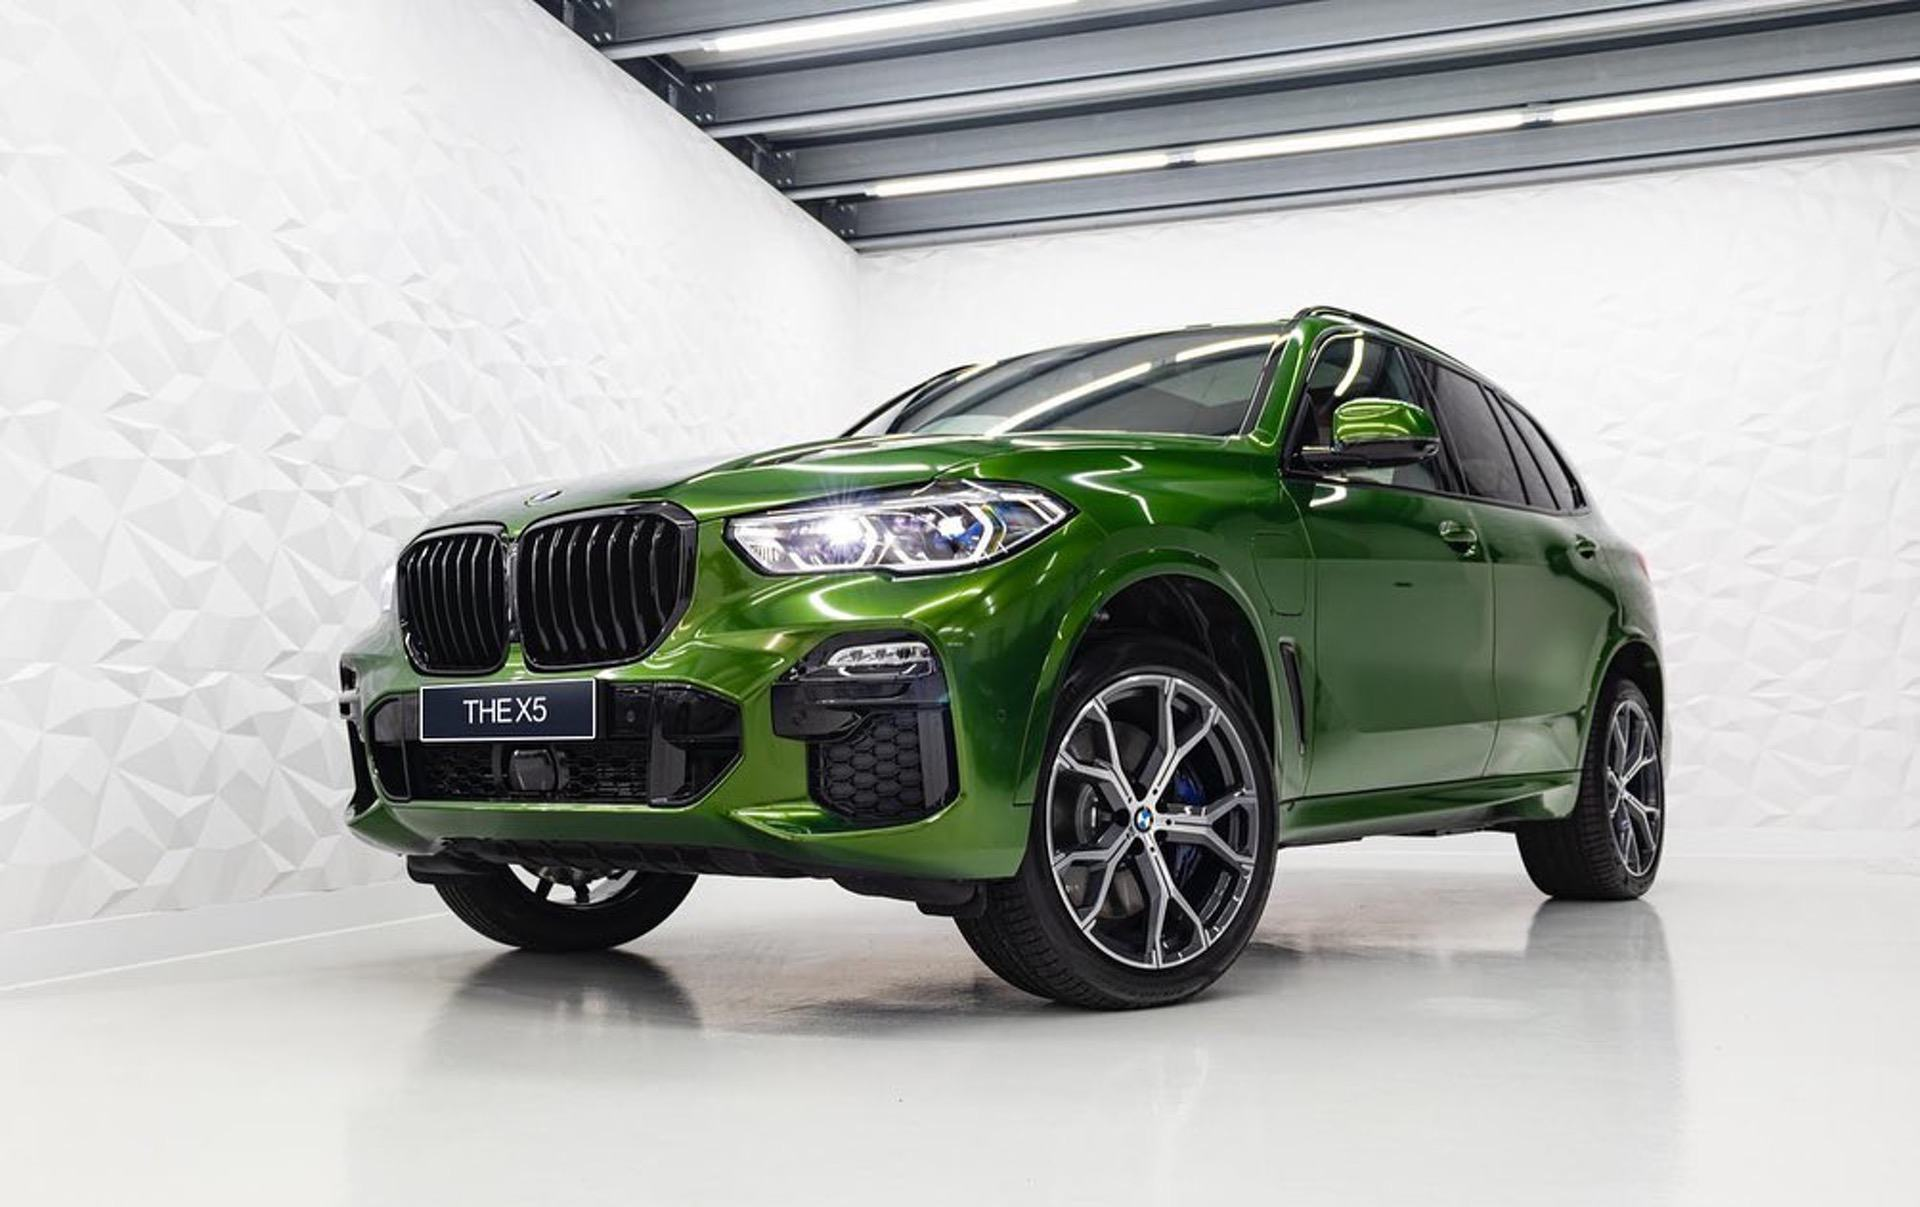 This BMW X5 looks stunning in Verde Ermes Individual color